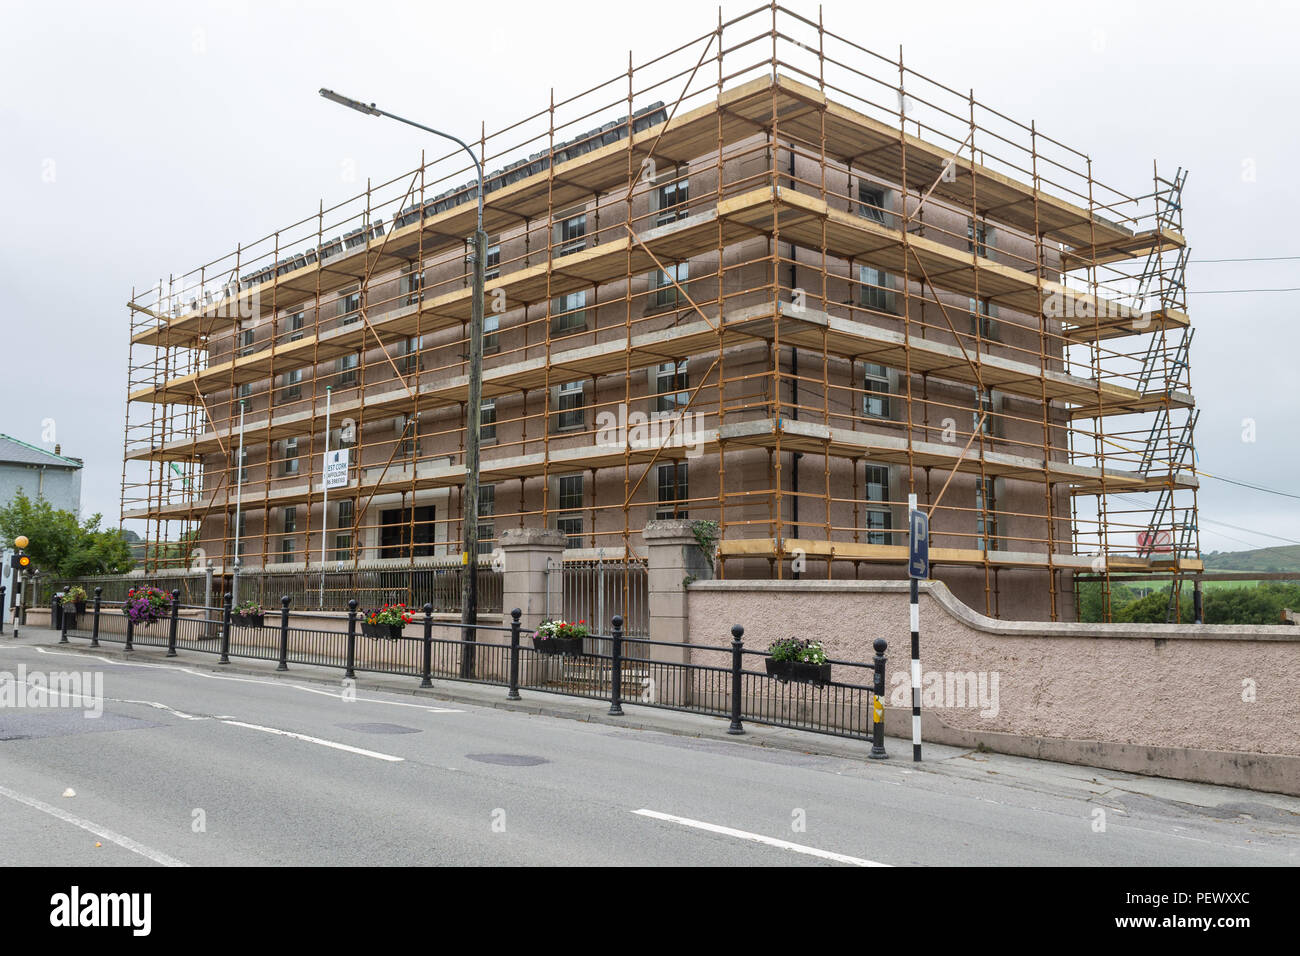 old-school-building-covered-in-scaffolding-ireland-PEWXXC.jpg